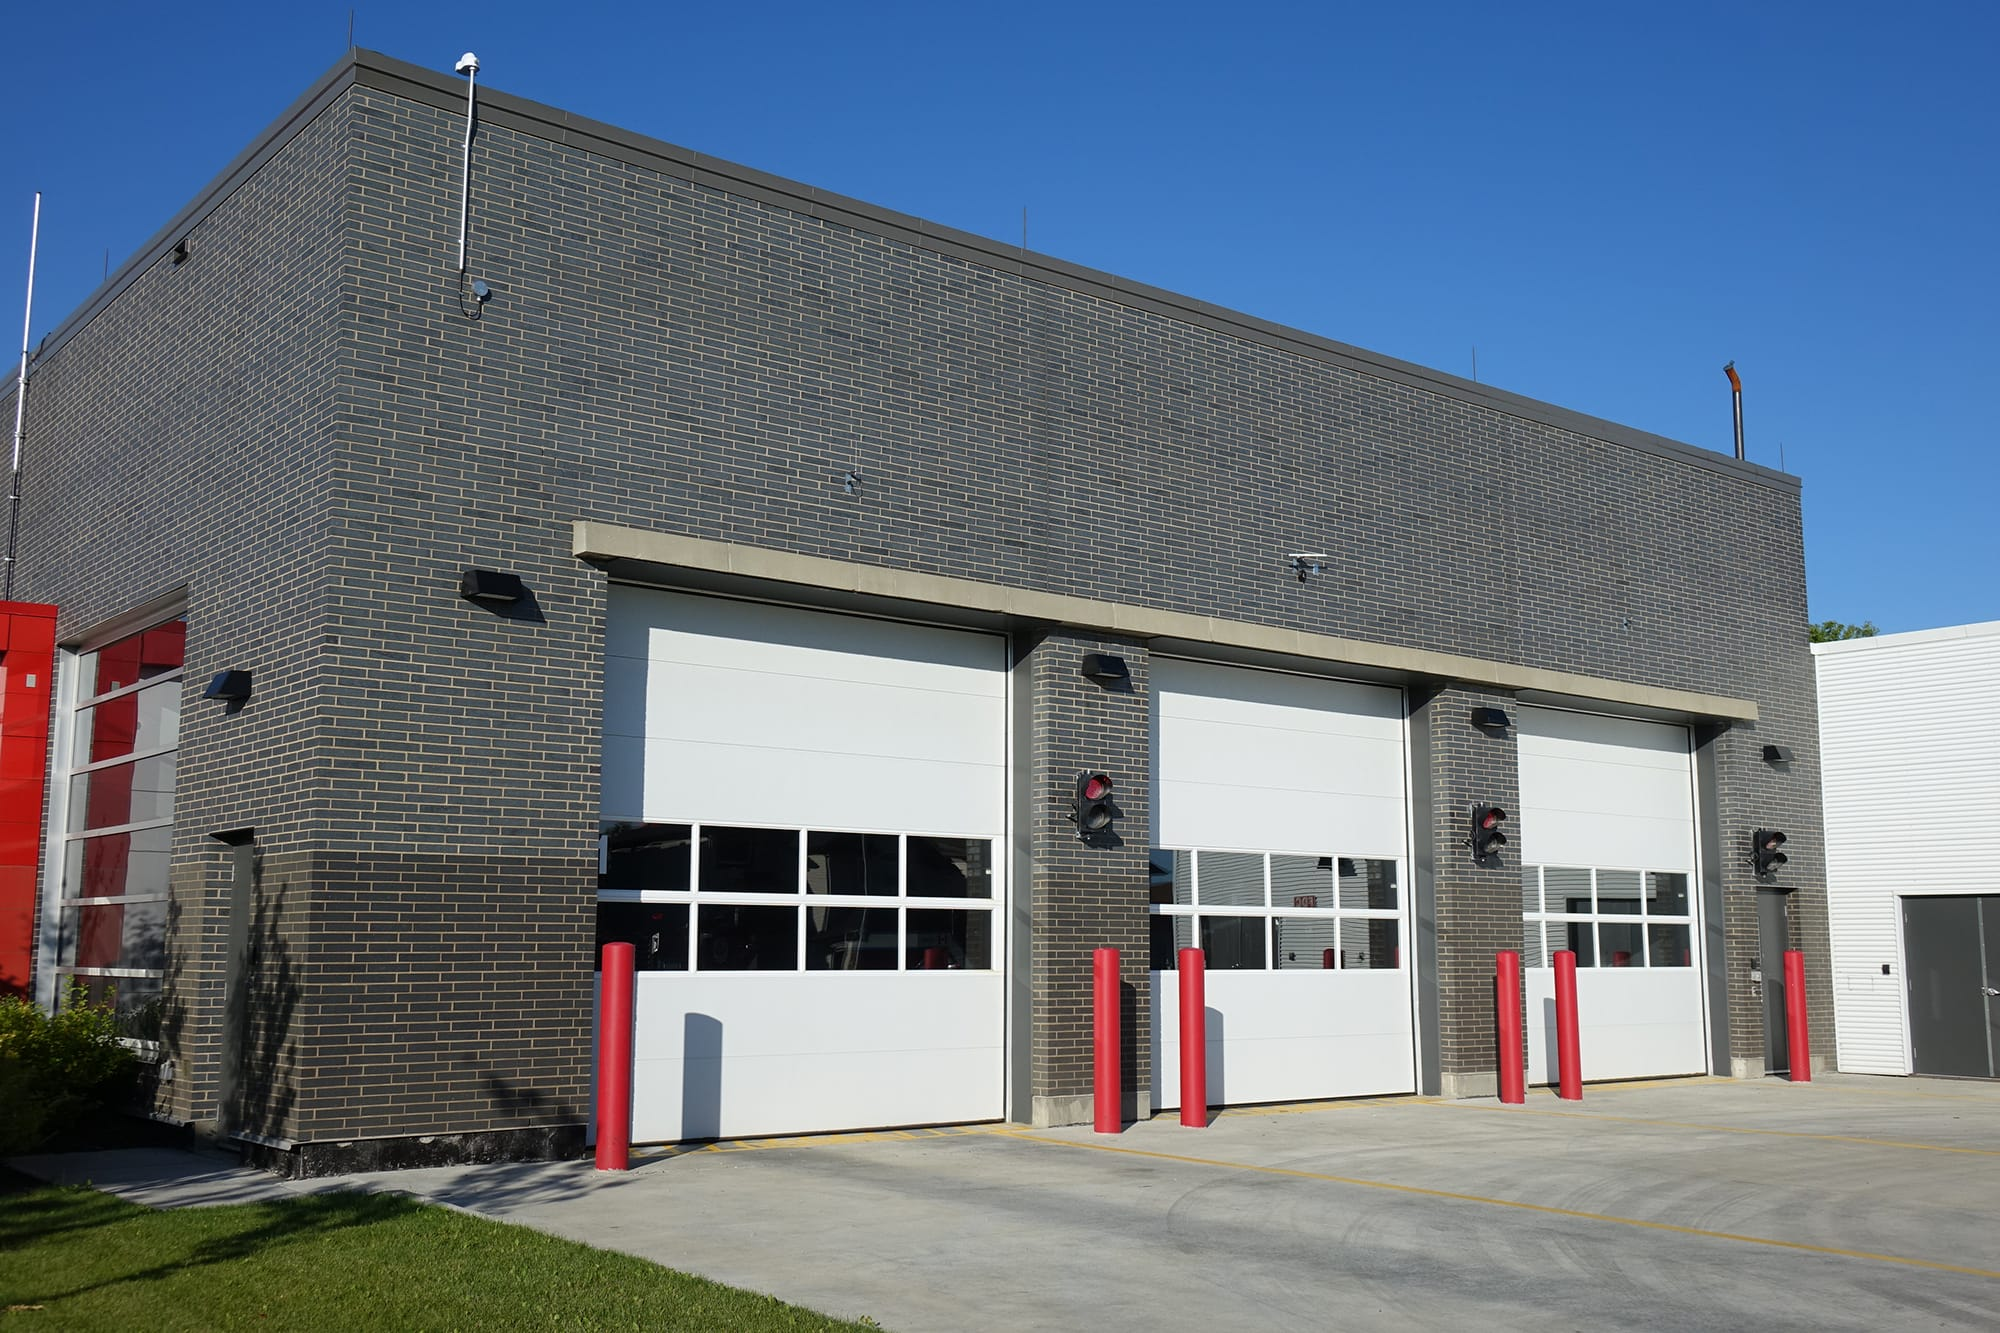 Pilot Sound Fire Station bays